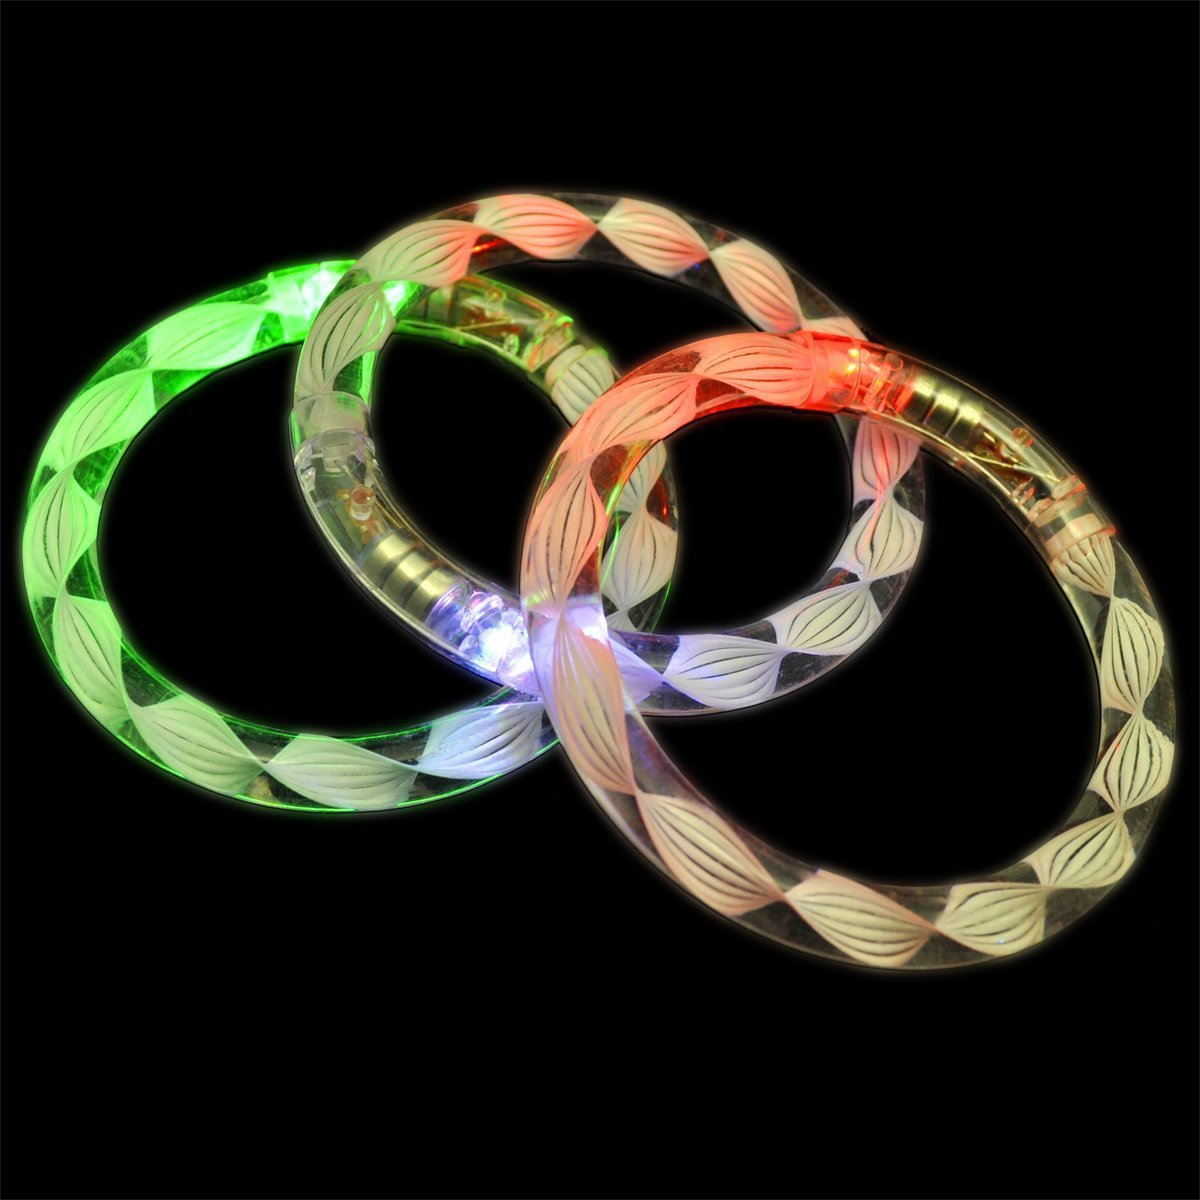 led-rainbow-bracelet-spiral-bangle-flashing-glow-in-a-dark-light-up-bracelet-flashing-blinky-lightfluorescence-stick-electronic-led-light-emiting-braceletkids-party-weddingpartyfavors.jpg